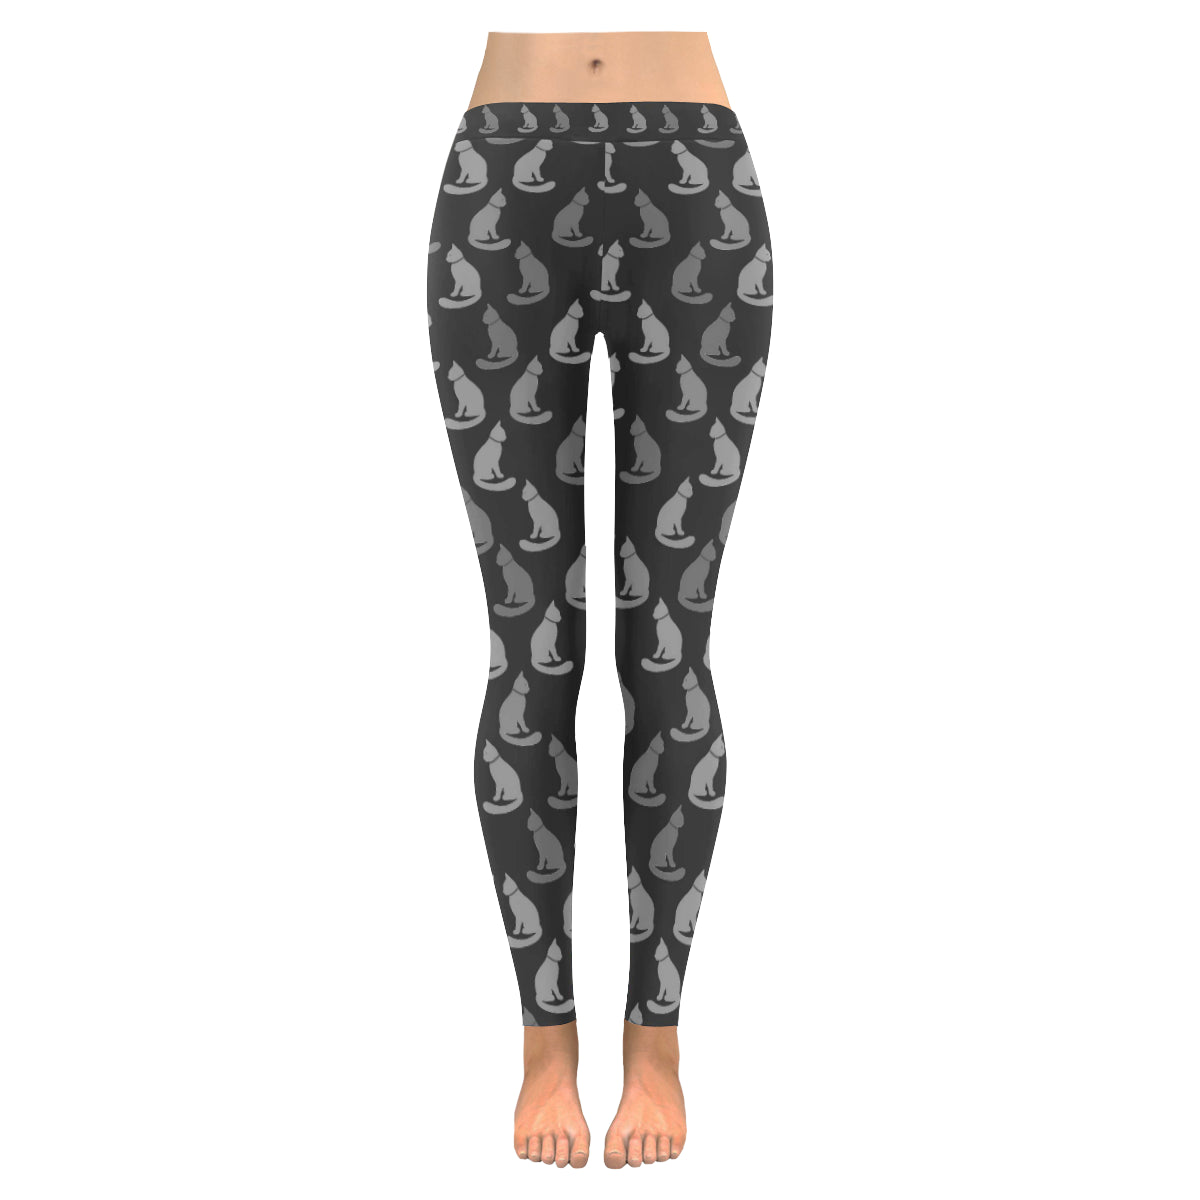 Legging au design chats gris noir